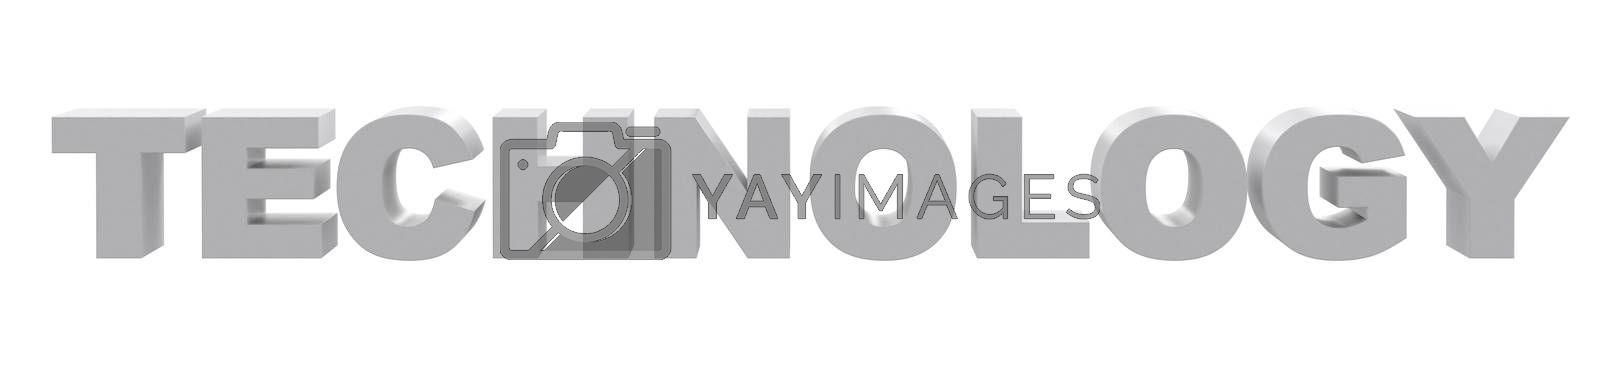 Word technology on isolated white background, front view